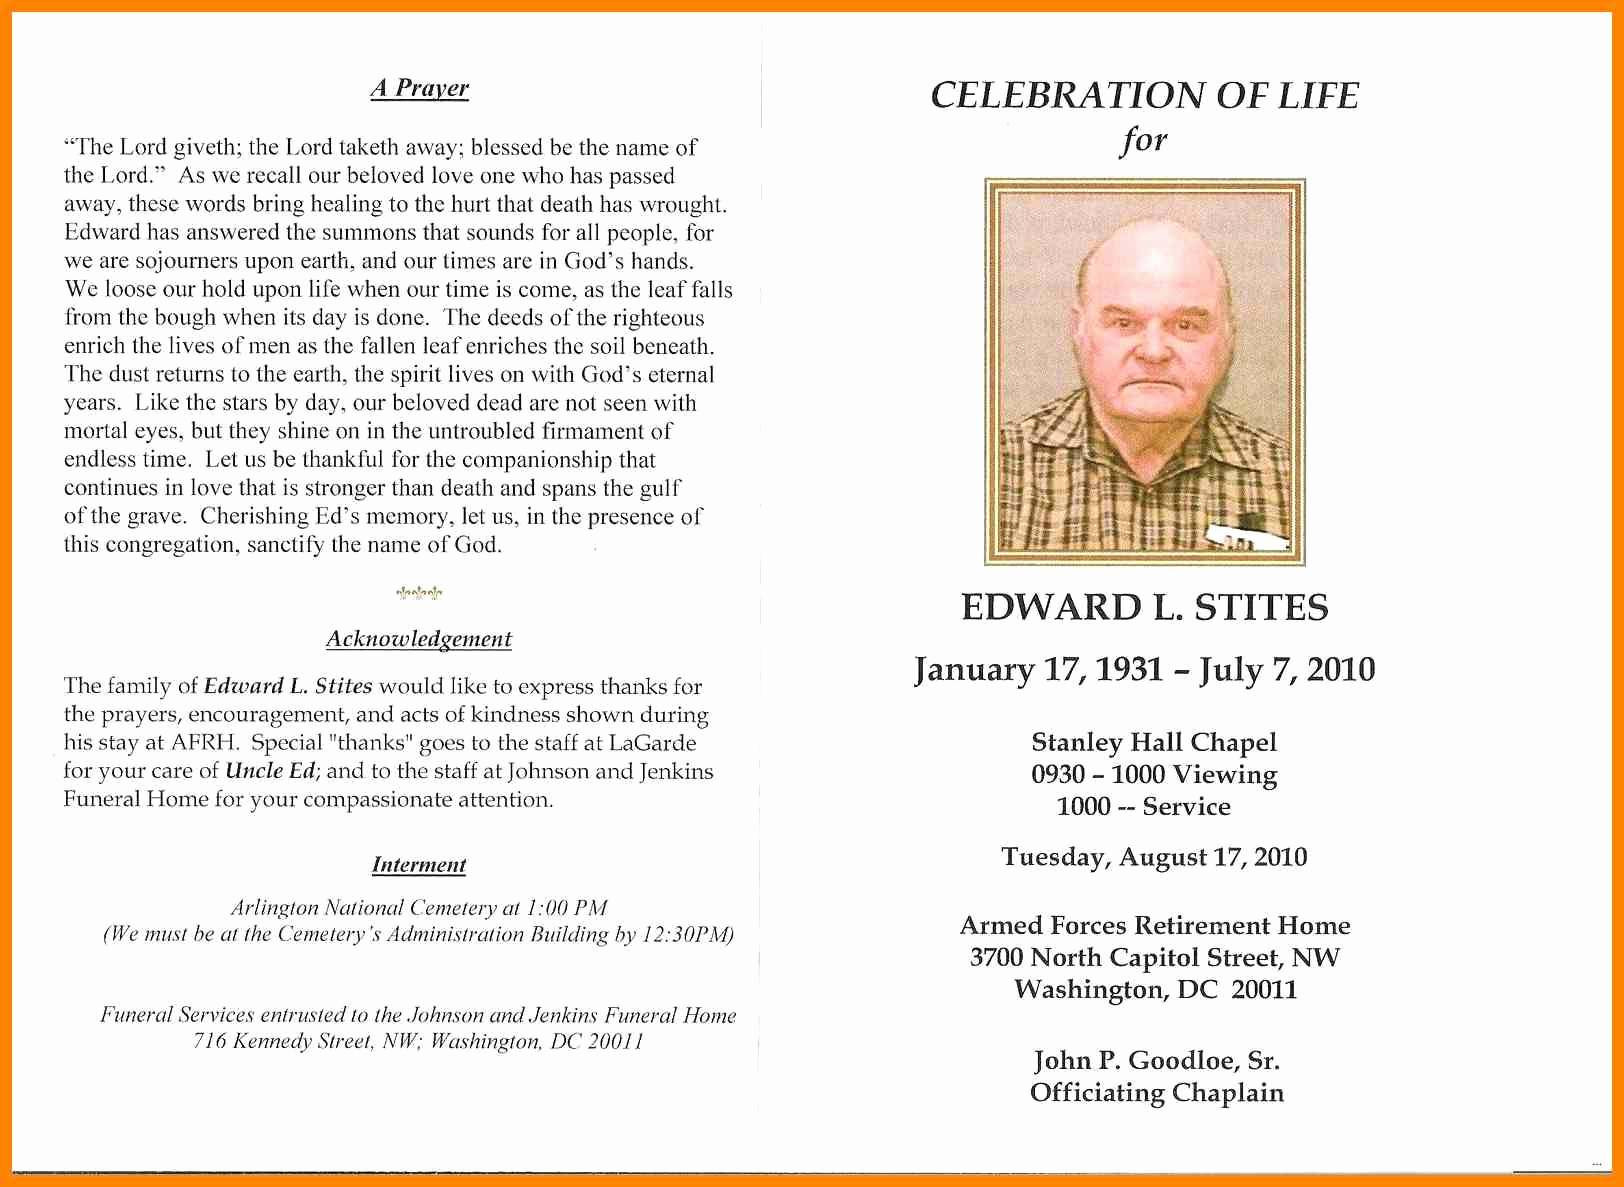 002 Celebration Of Life Program Template Free Printable Memorial - Free Printable Memorial Card Template